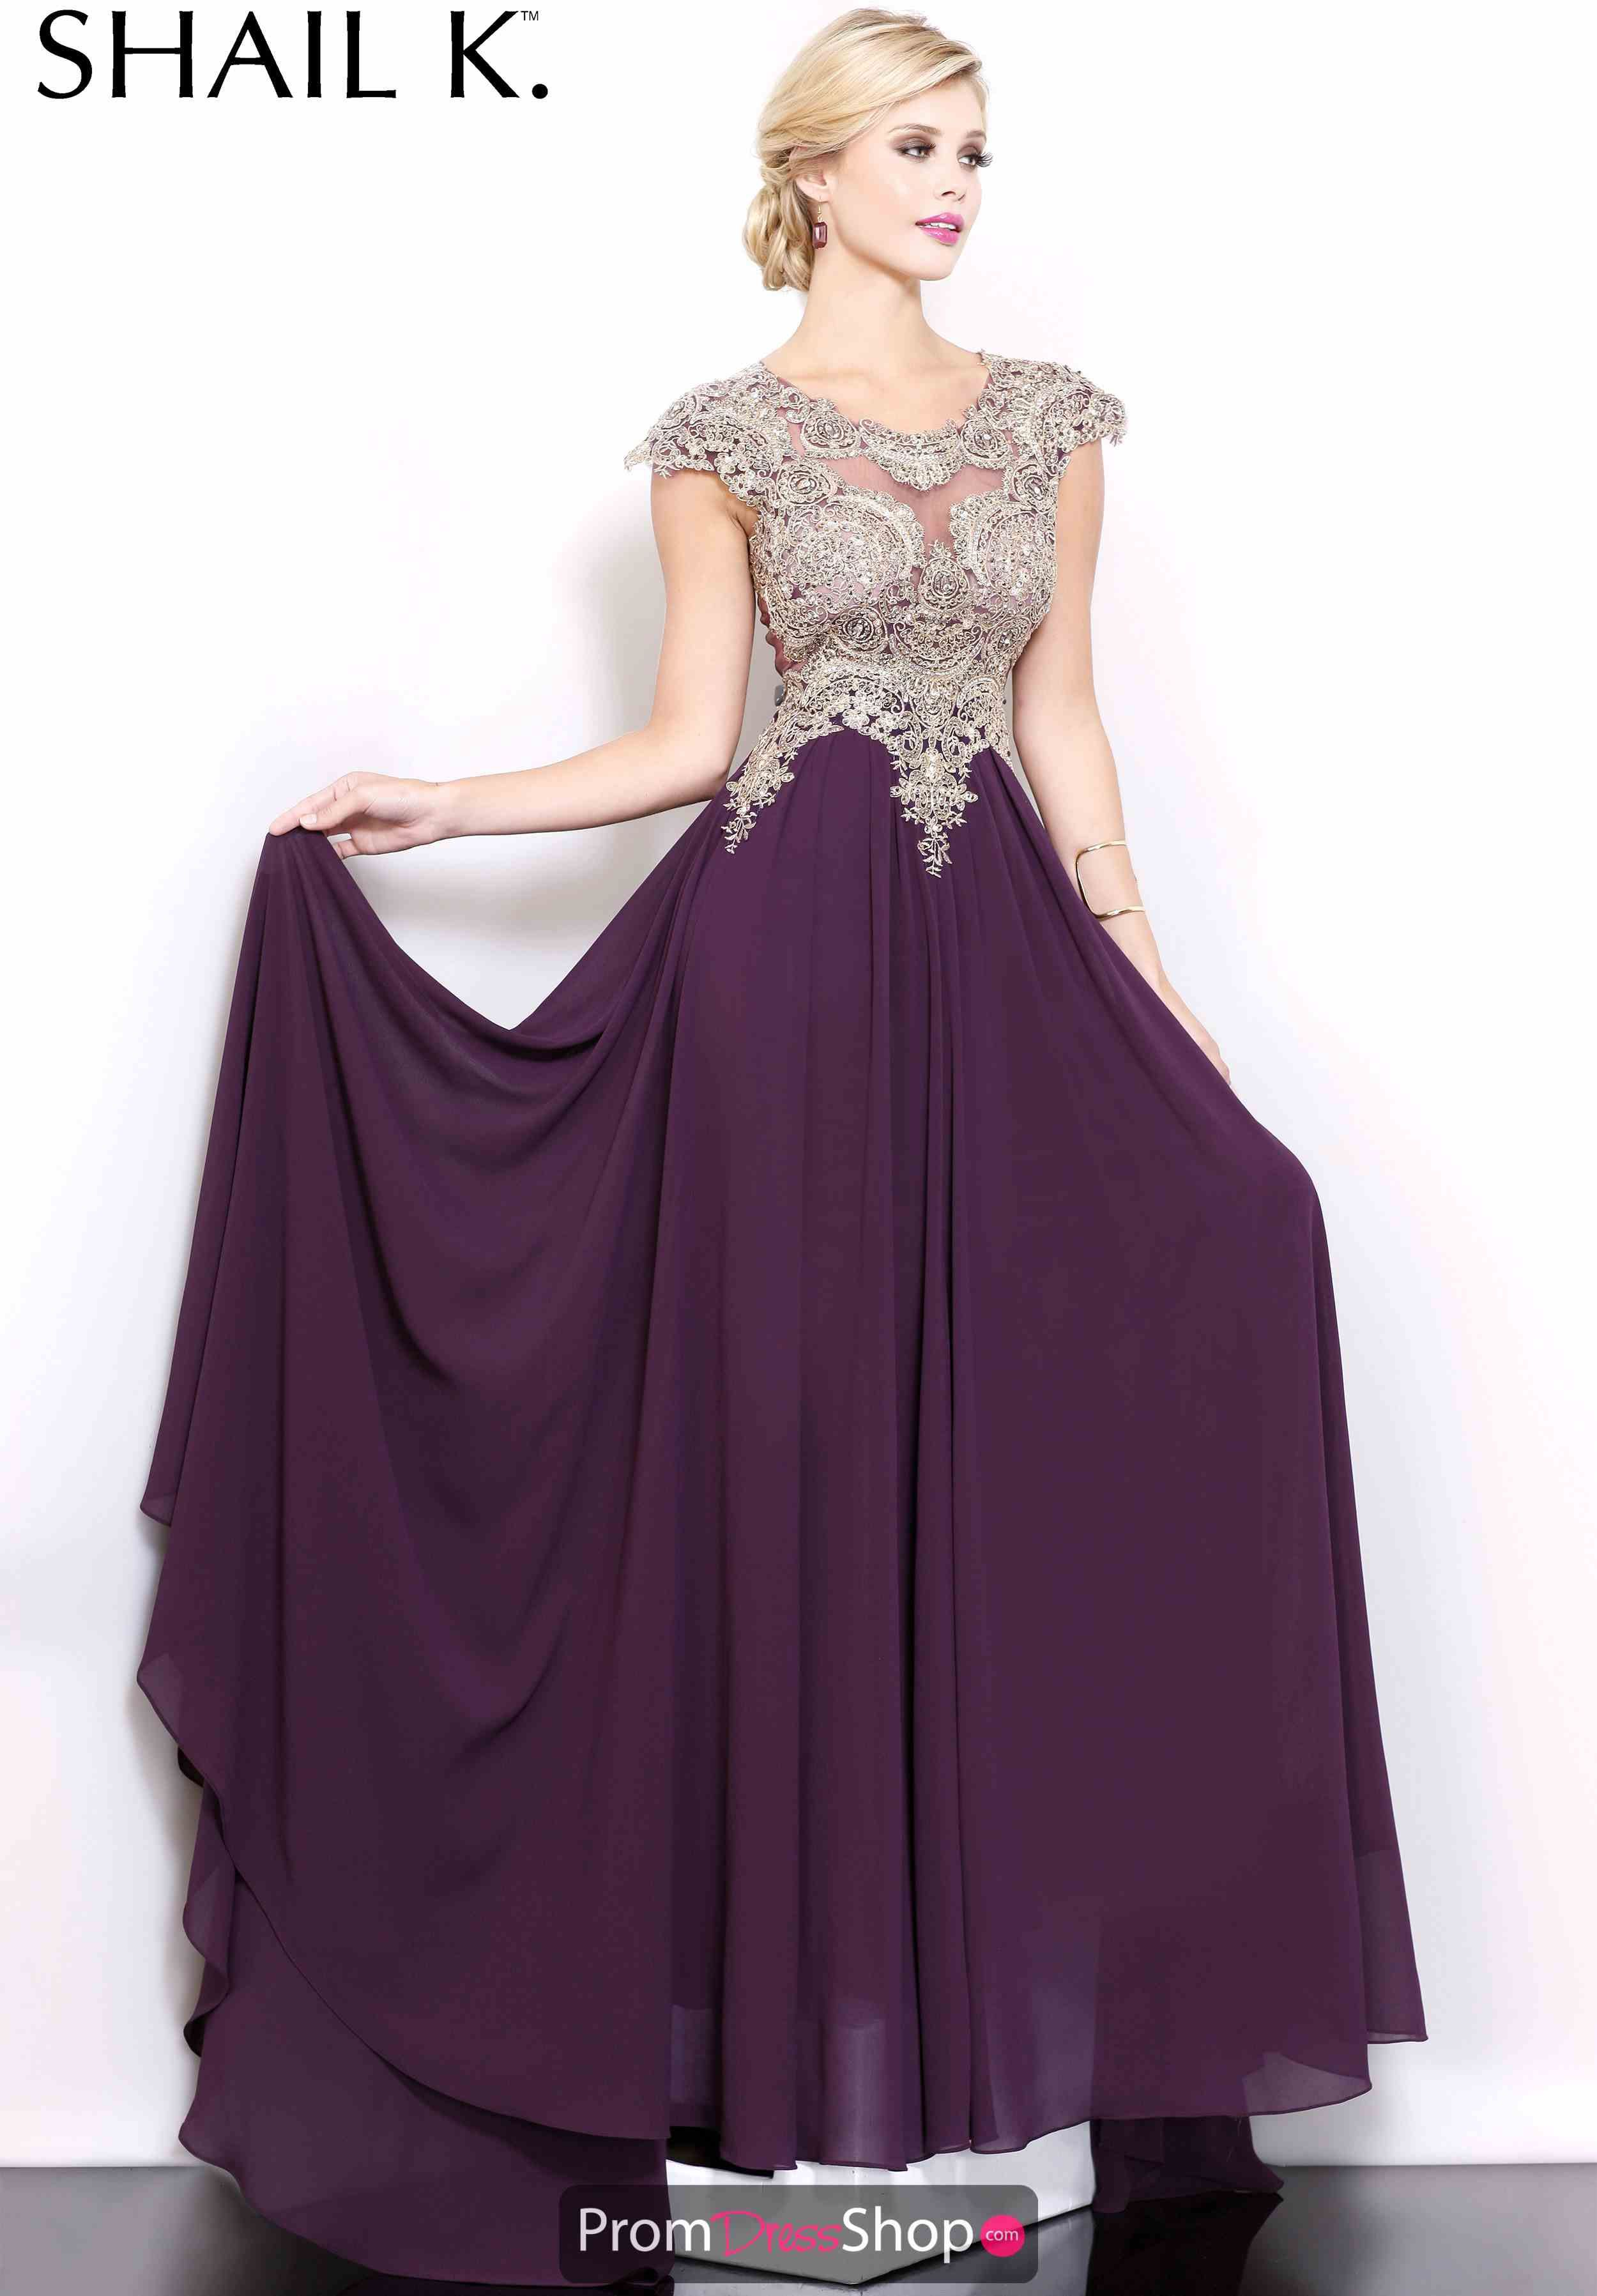 Shail k dresses at prom dress shop prom free shipping and ships